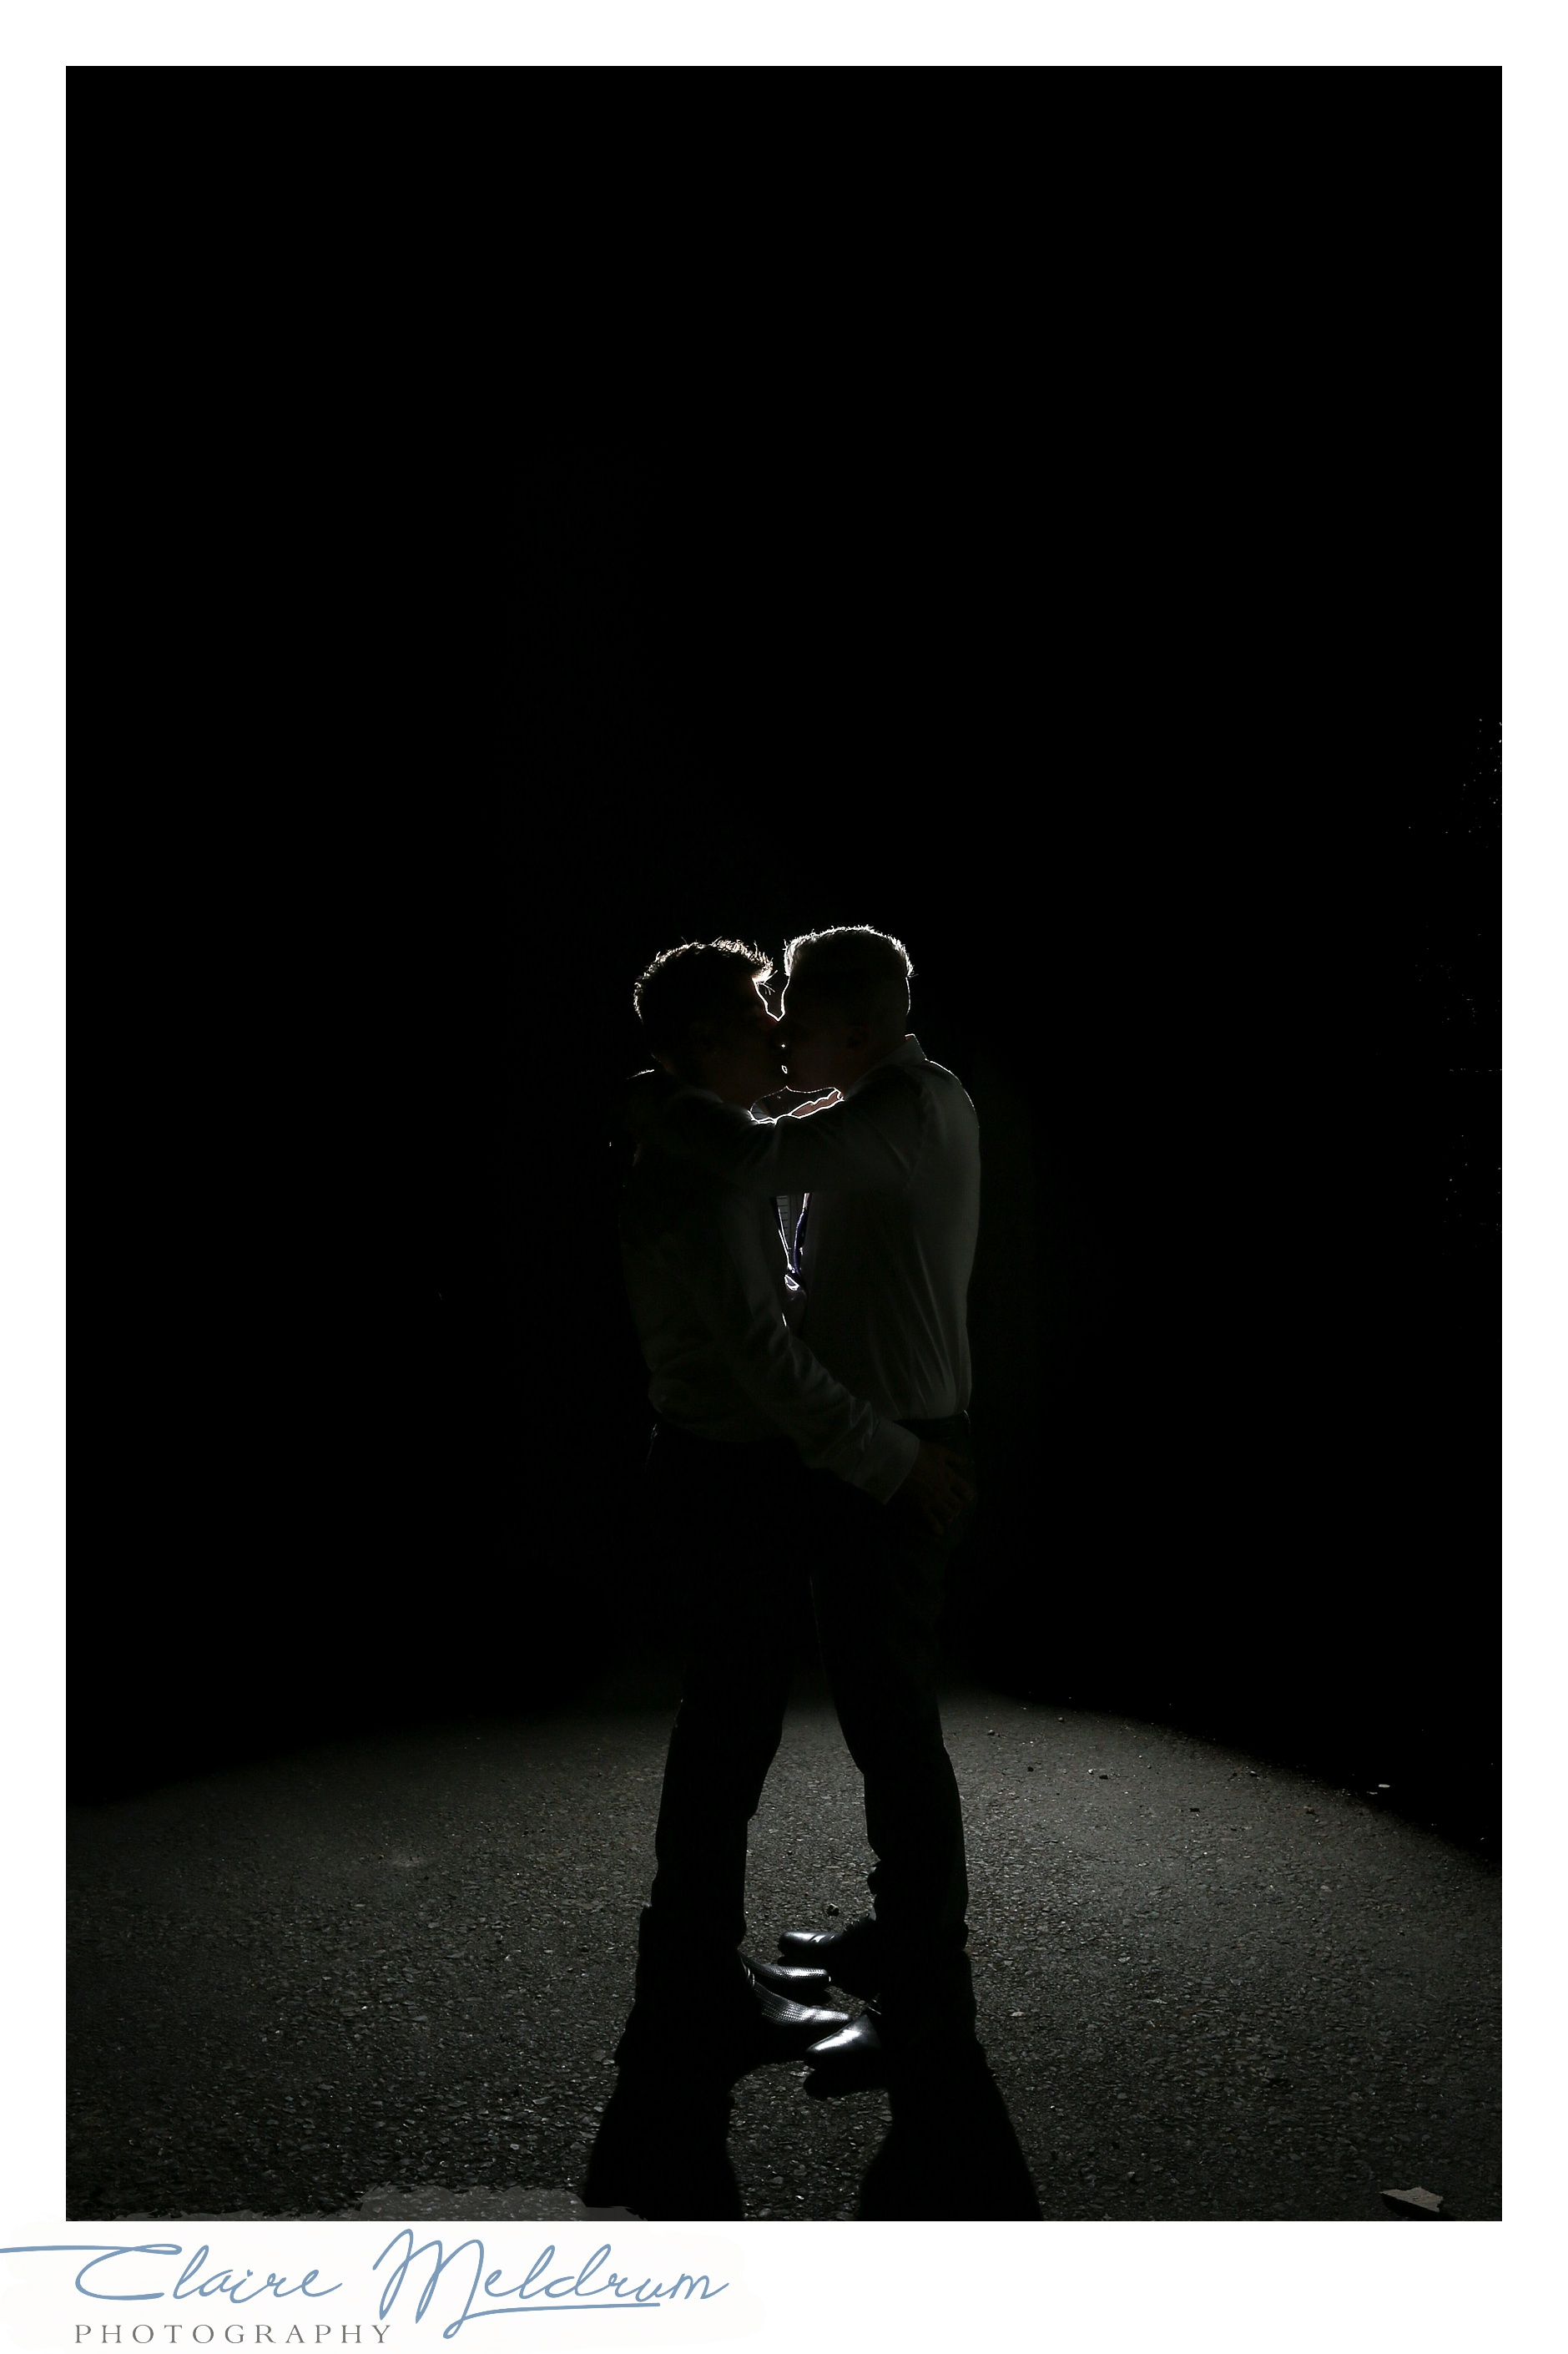 Evening shot, silhouette Claire Meldrum Photography